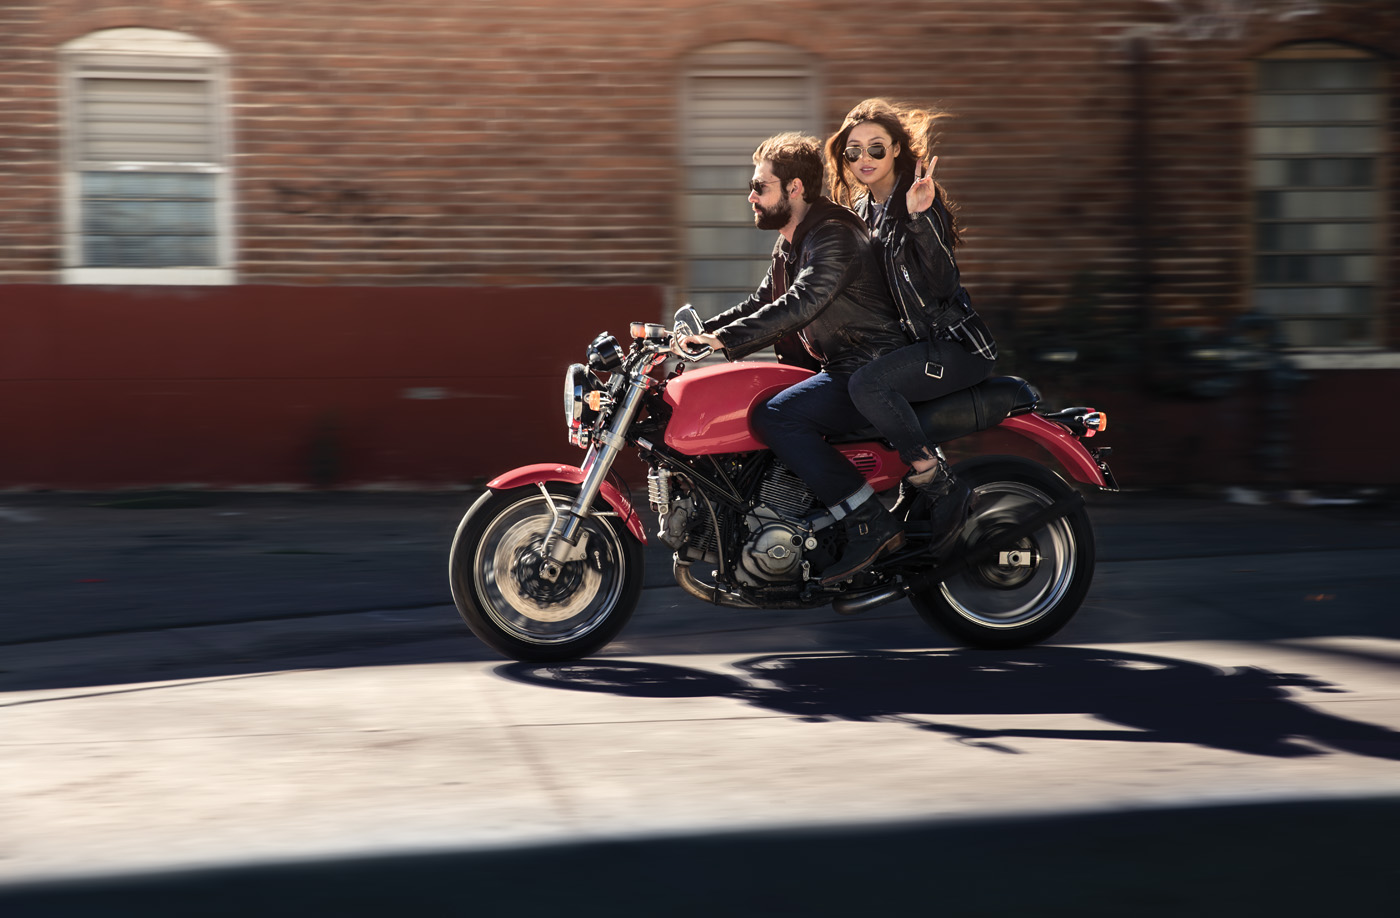 A man drives a red motorcycle while a woman sits behind him and throws up a peace sign.